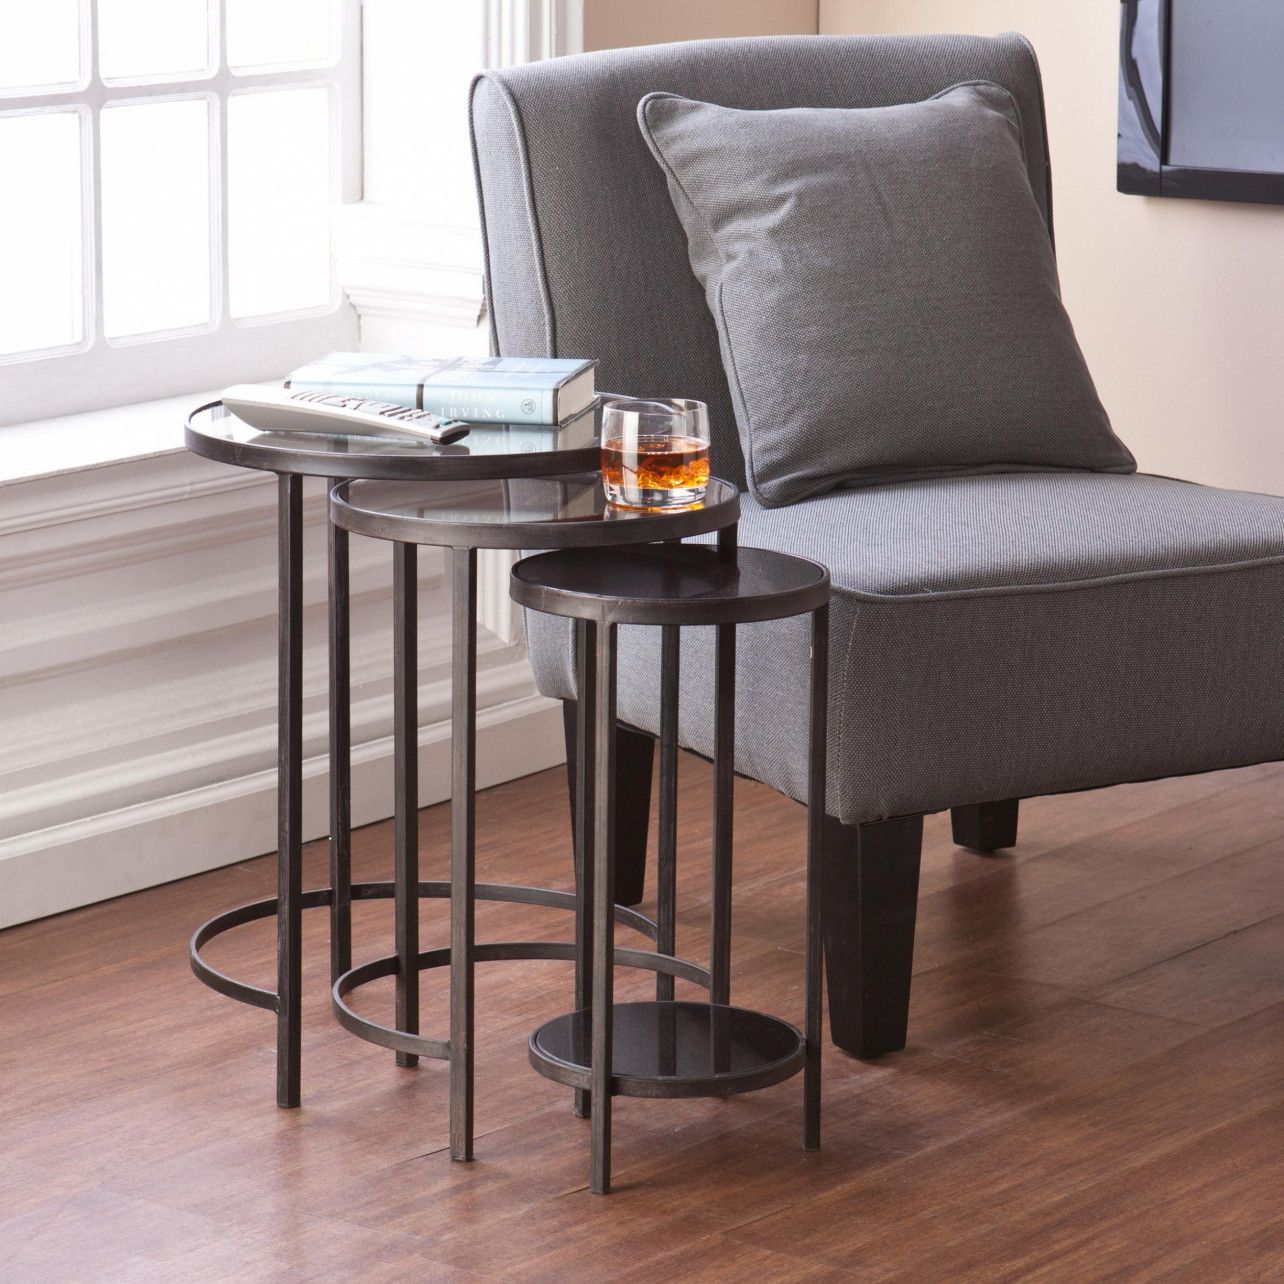 Elegant set of Bronze and Antique Mirrored Nesting Tables